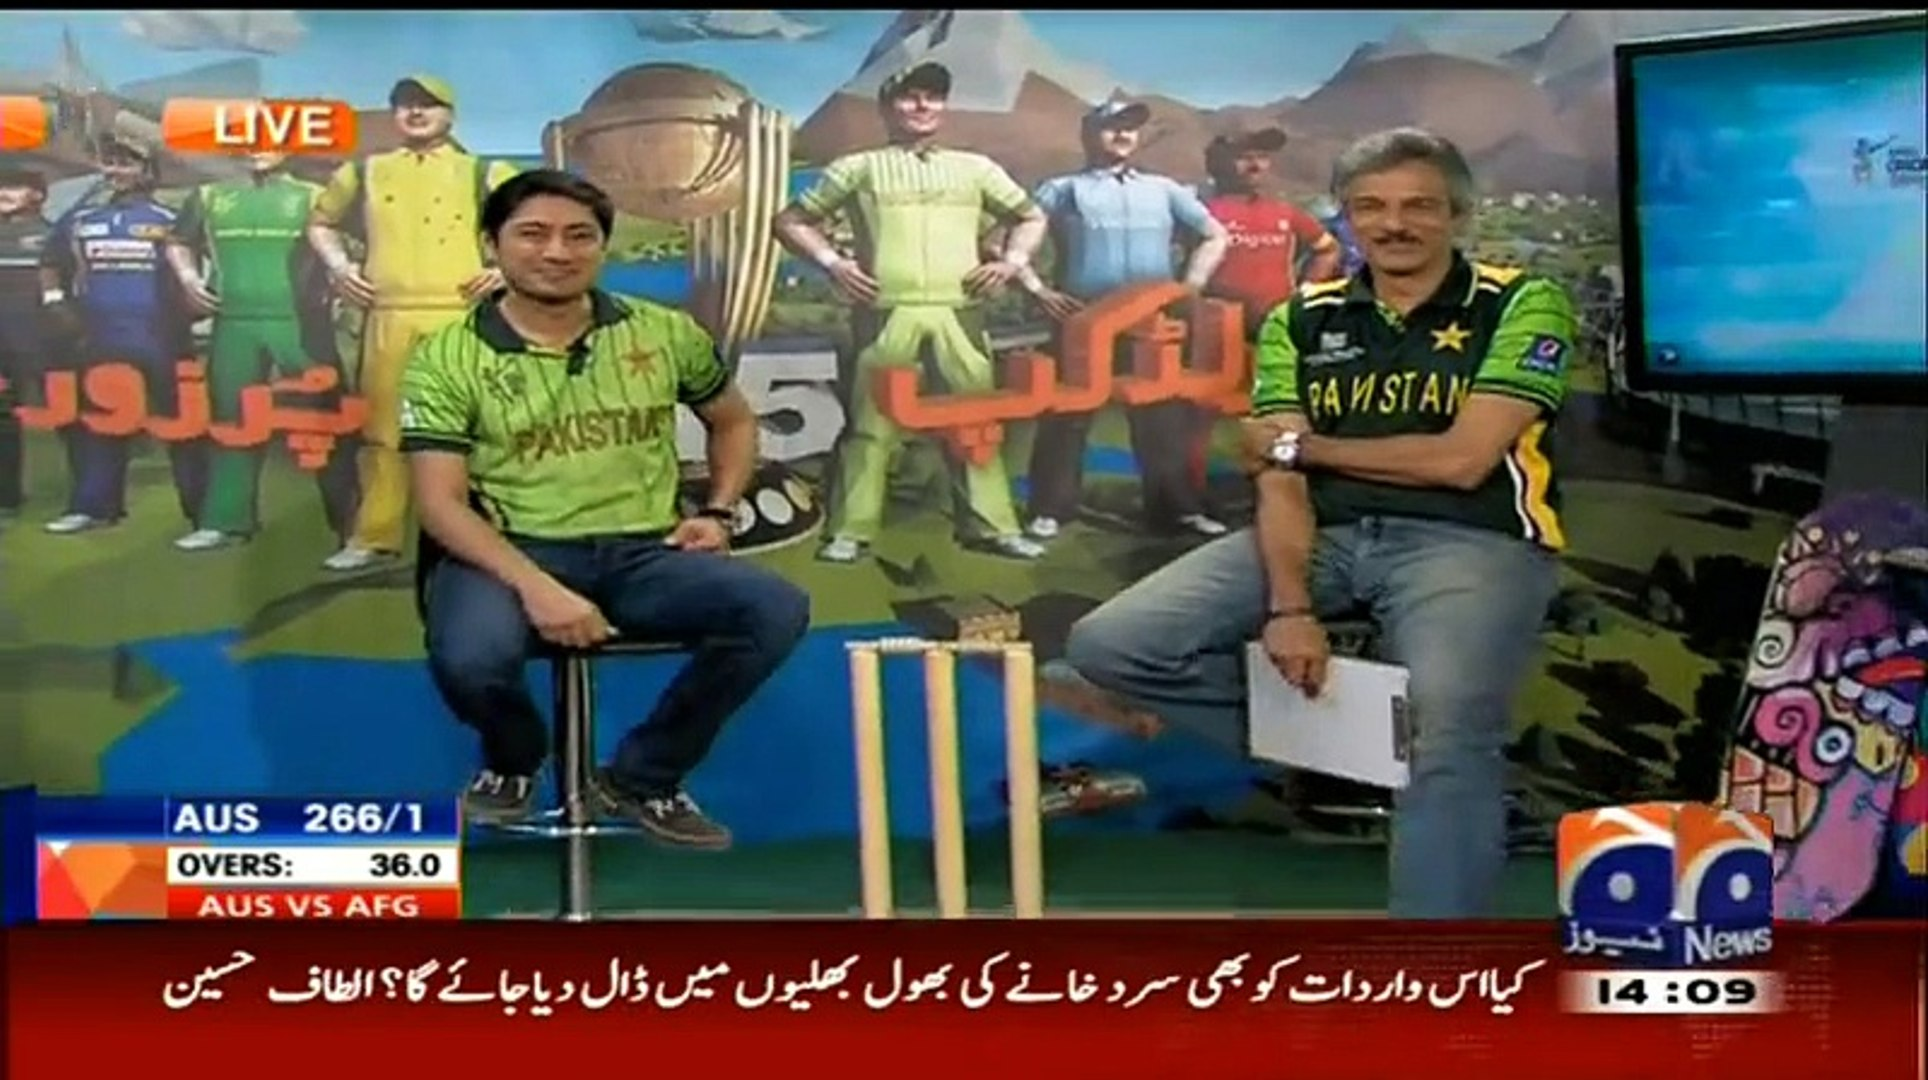 Hilarious Report by Geo News on Nasir Jamshed's Catch in Today's Match